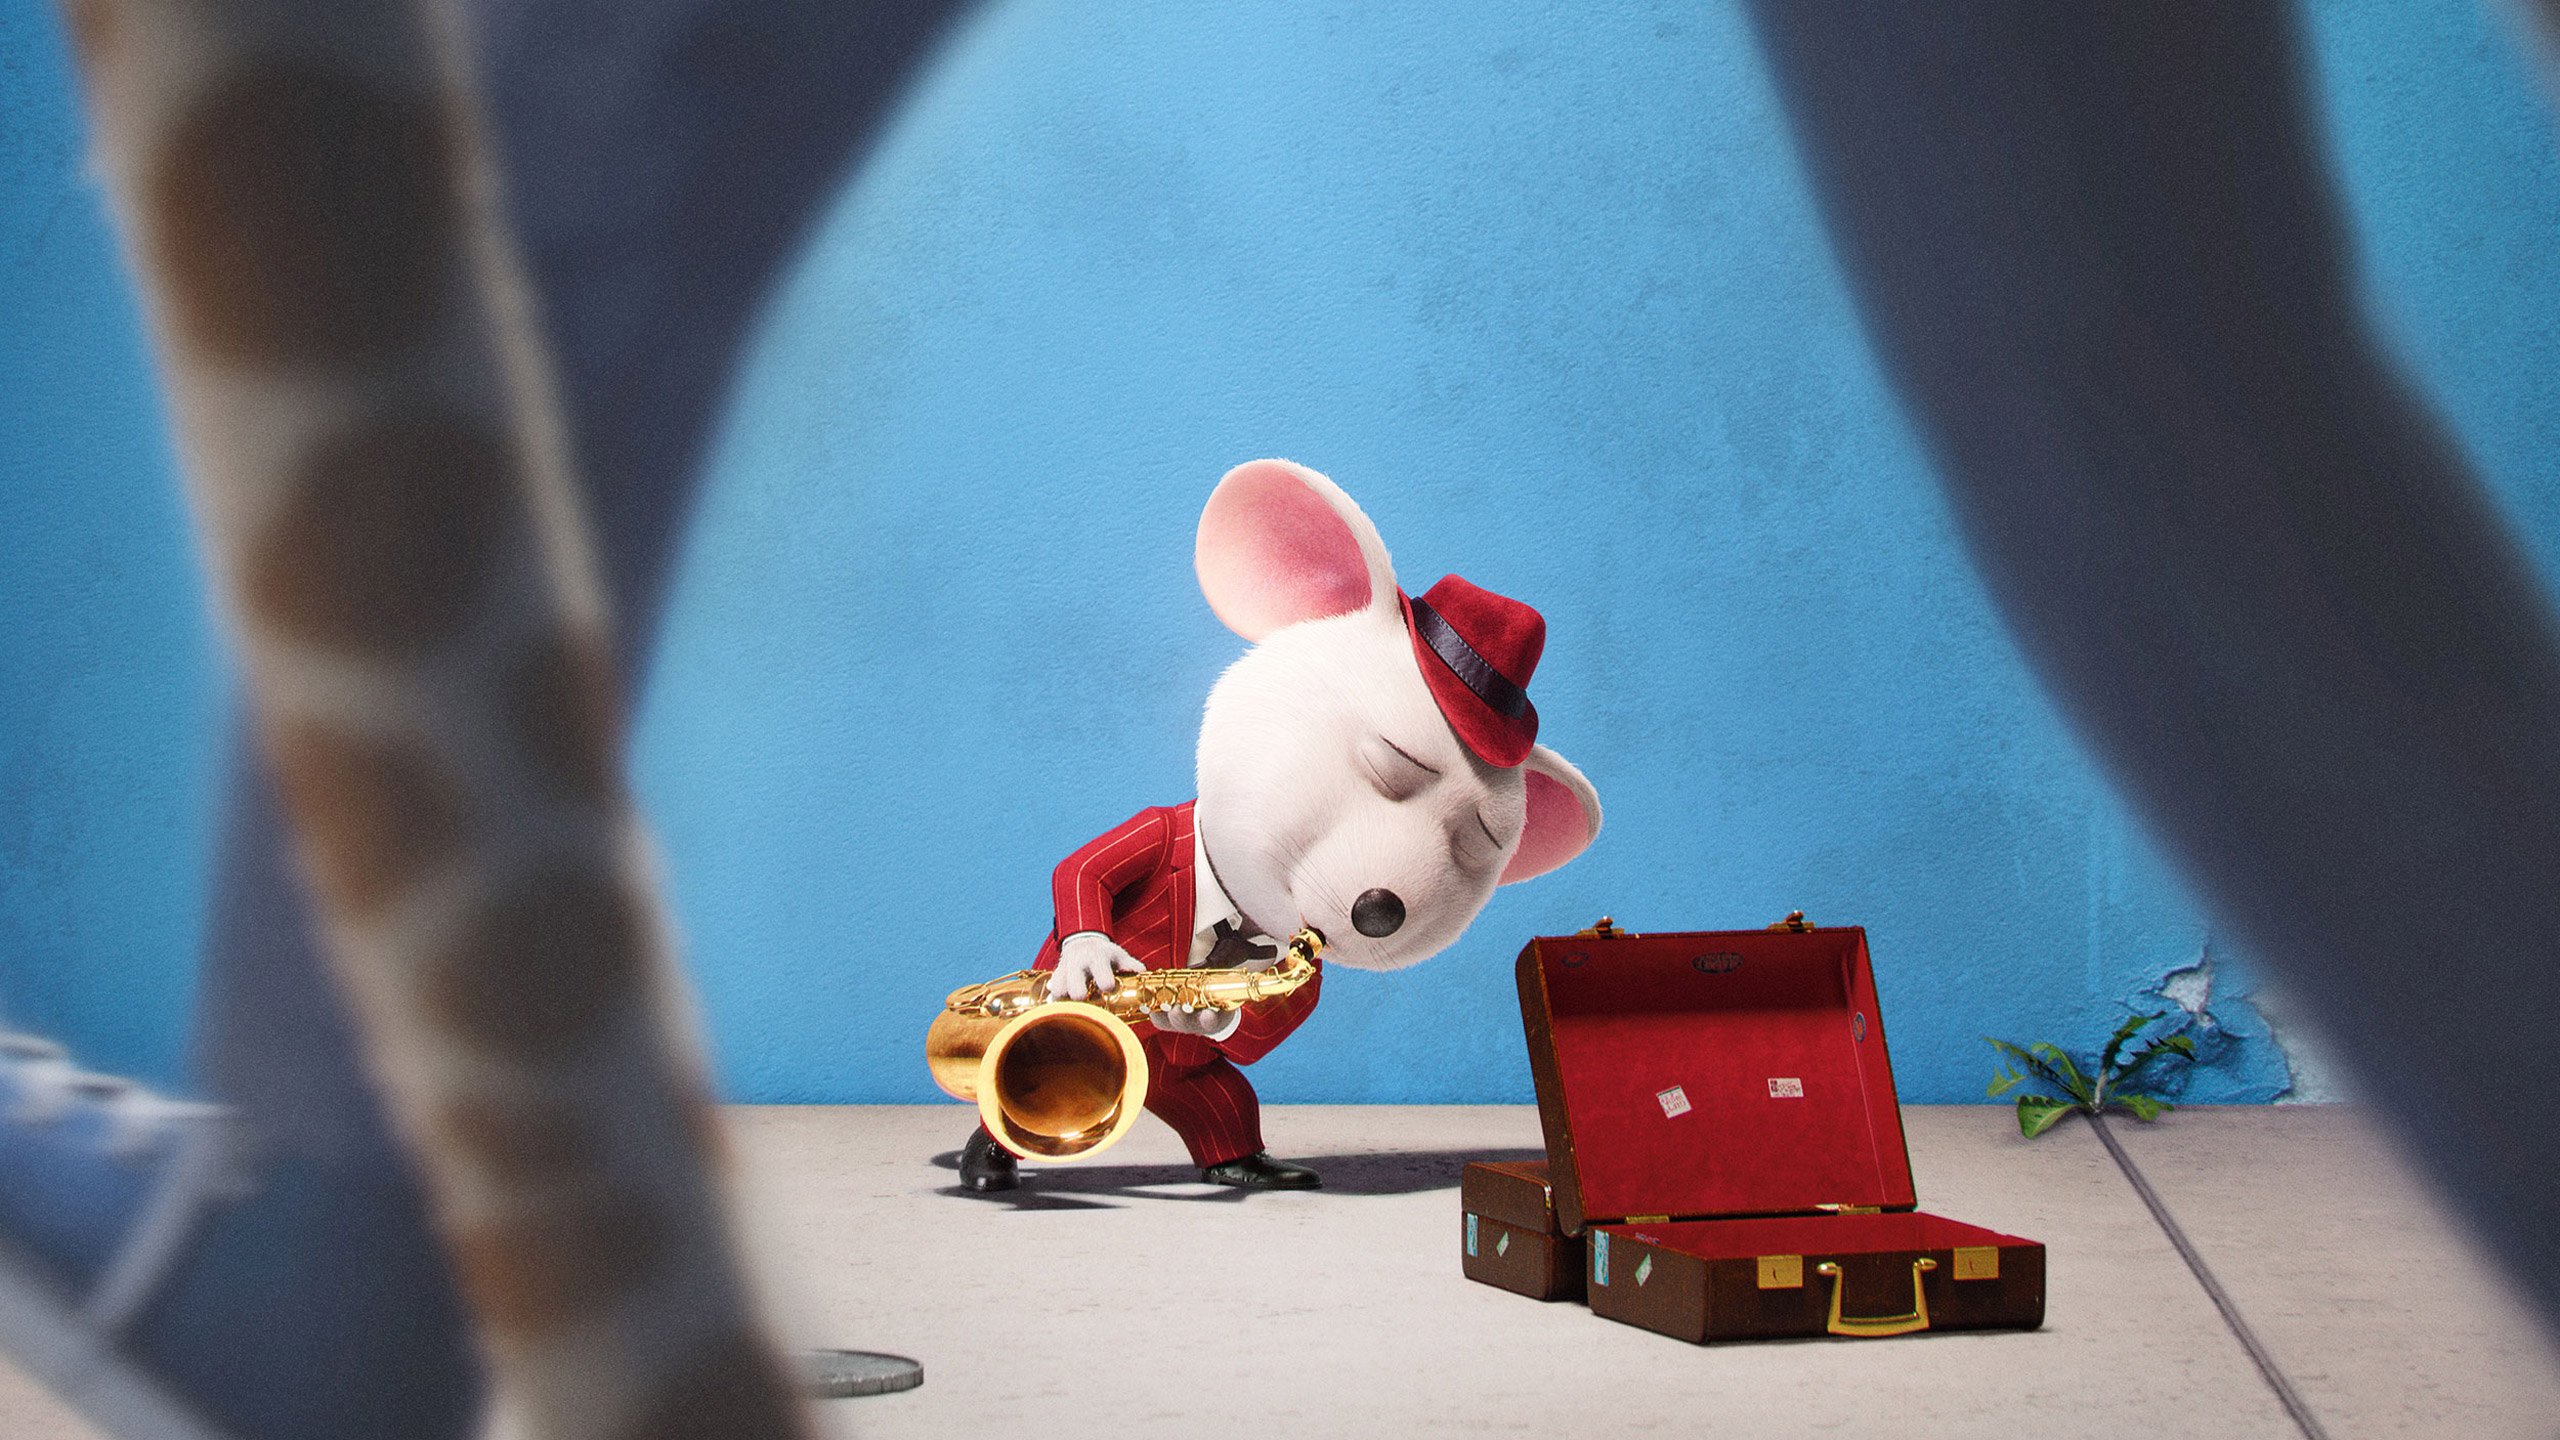 Sing Box Office Profits 2016 Another Victory For Illumination Universal Deadline